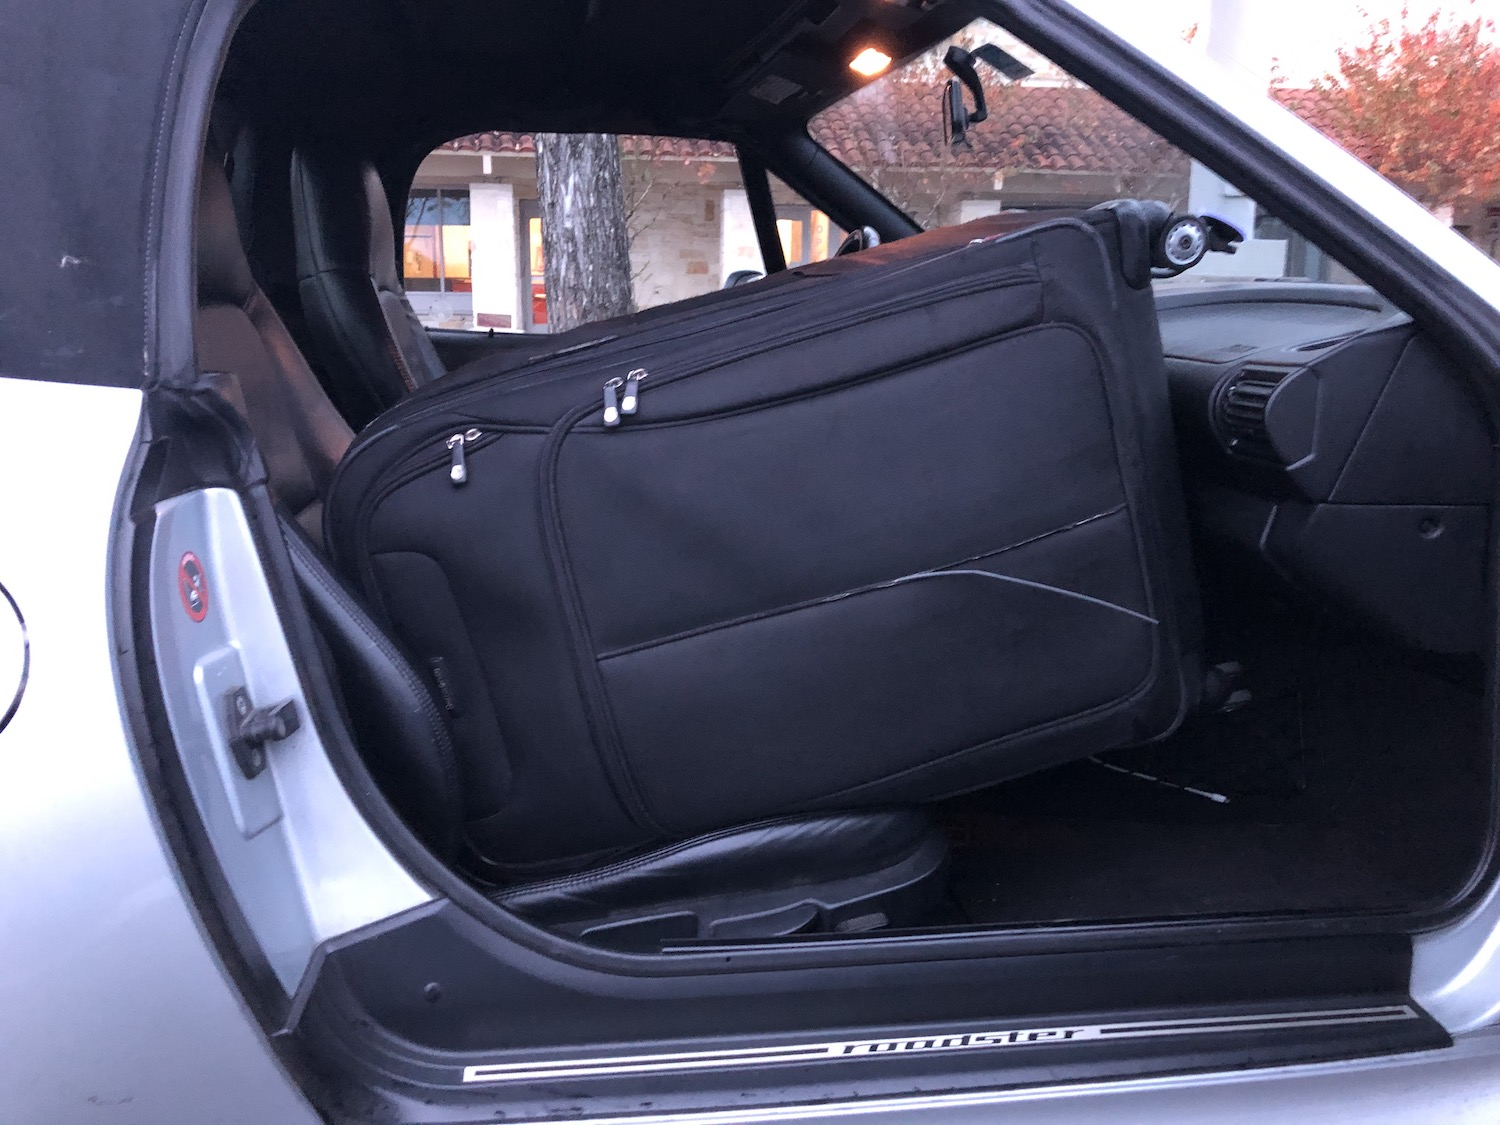 suitcase in bmw z3 front seat